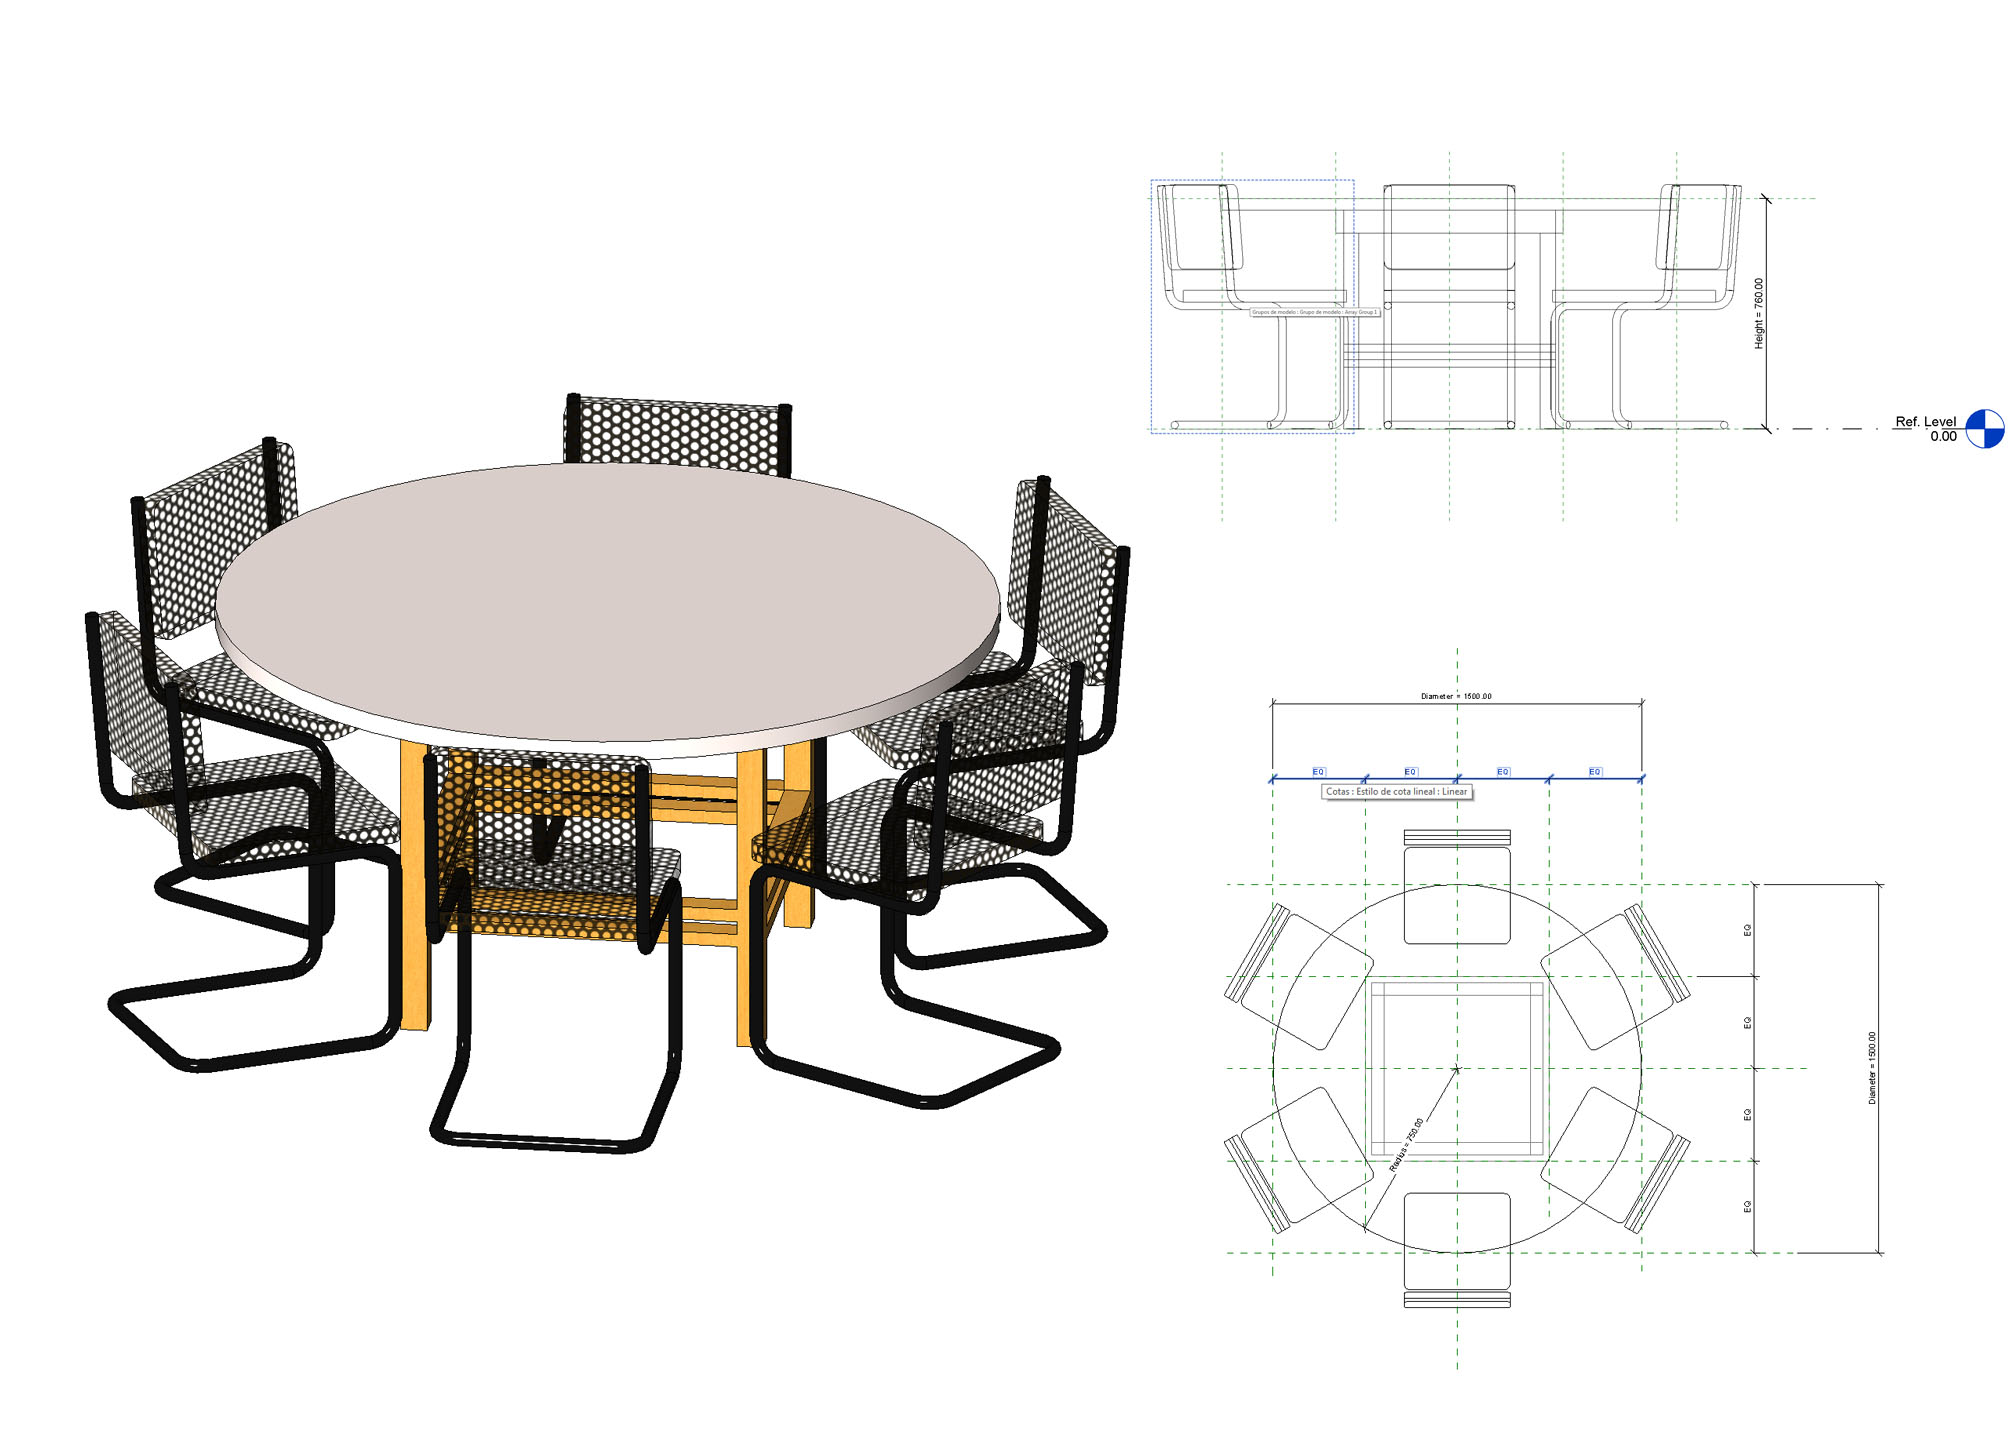 Round Table With Chairs In Rfa Cad Download 117542